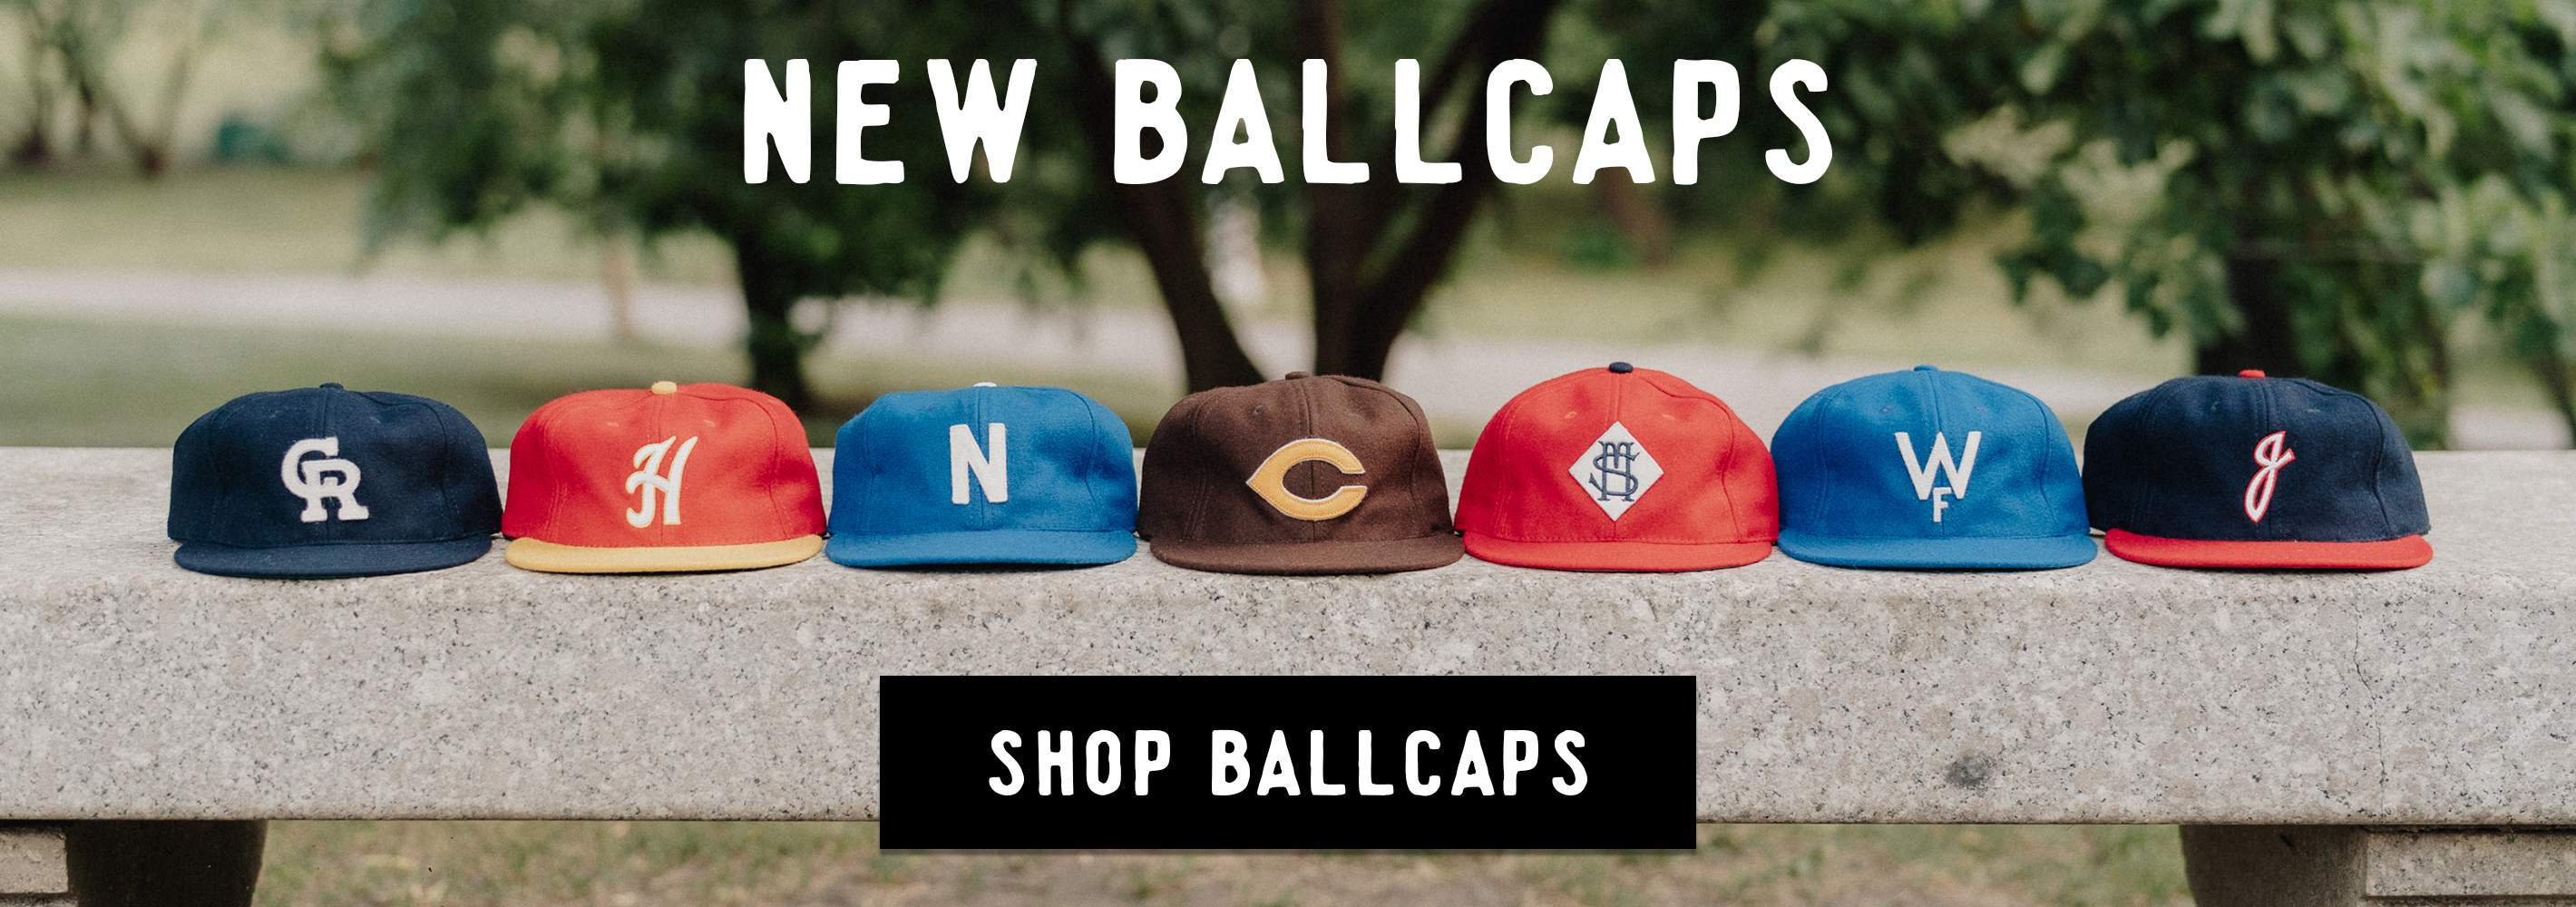 Photo of ballcaps on top of a bench.